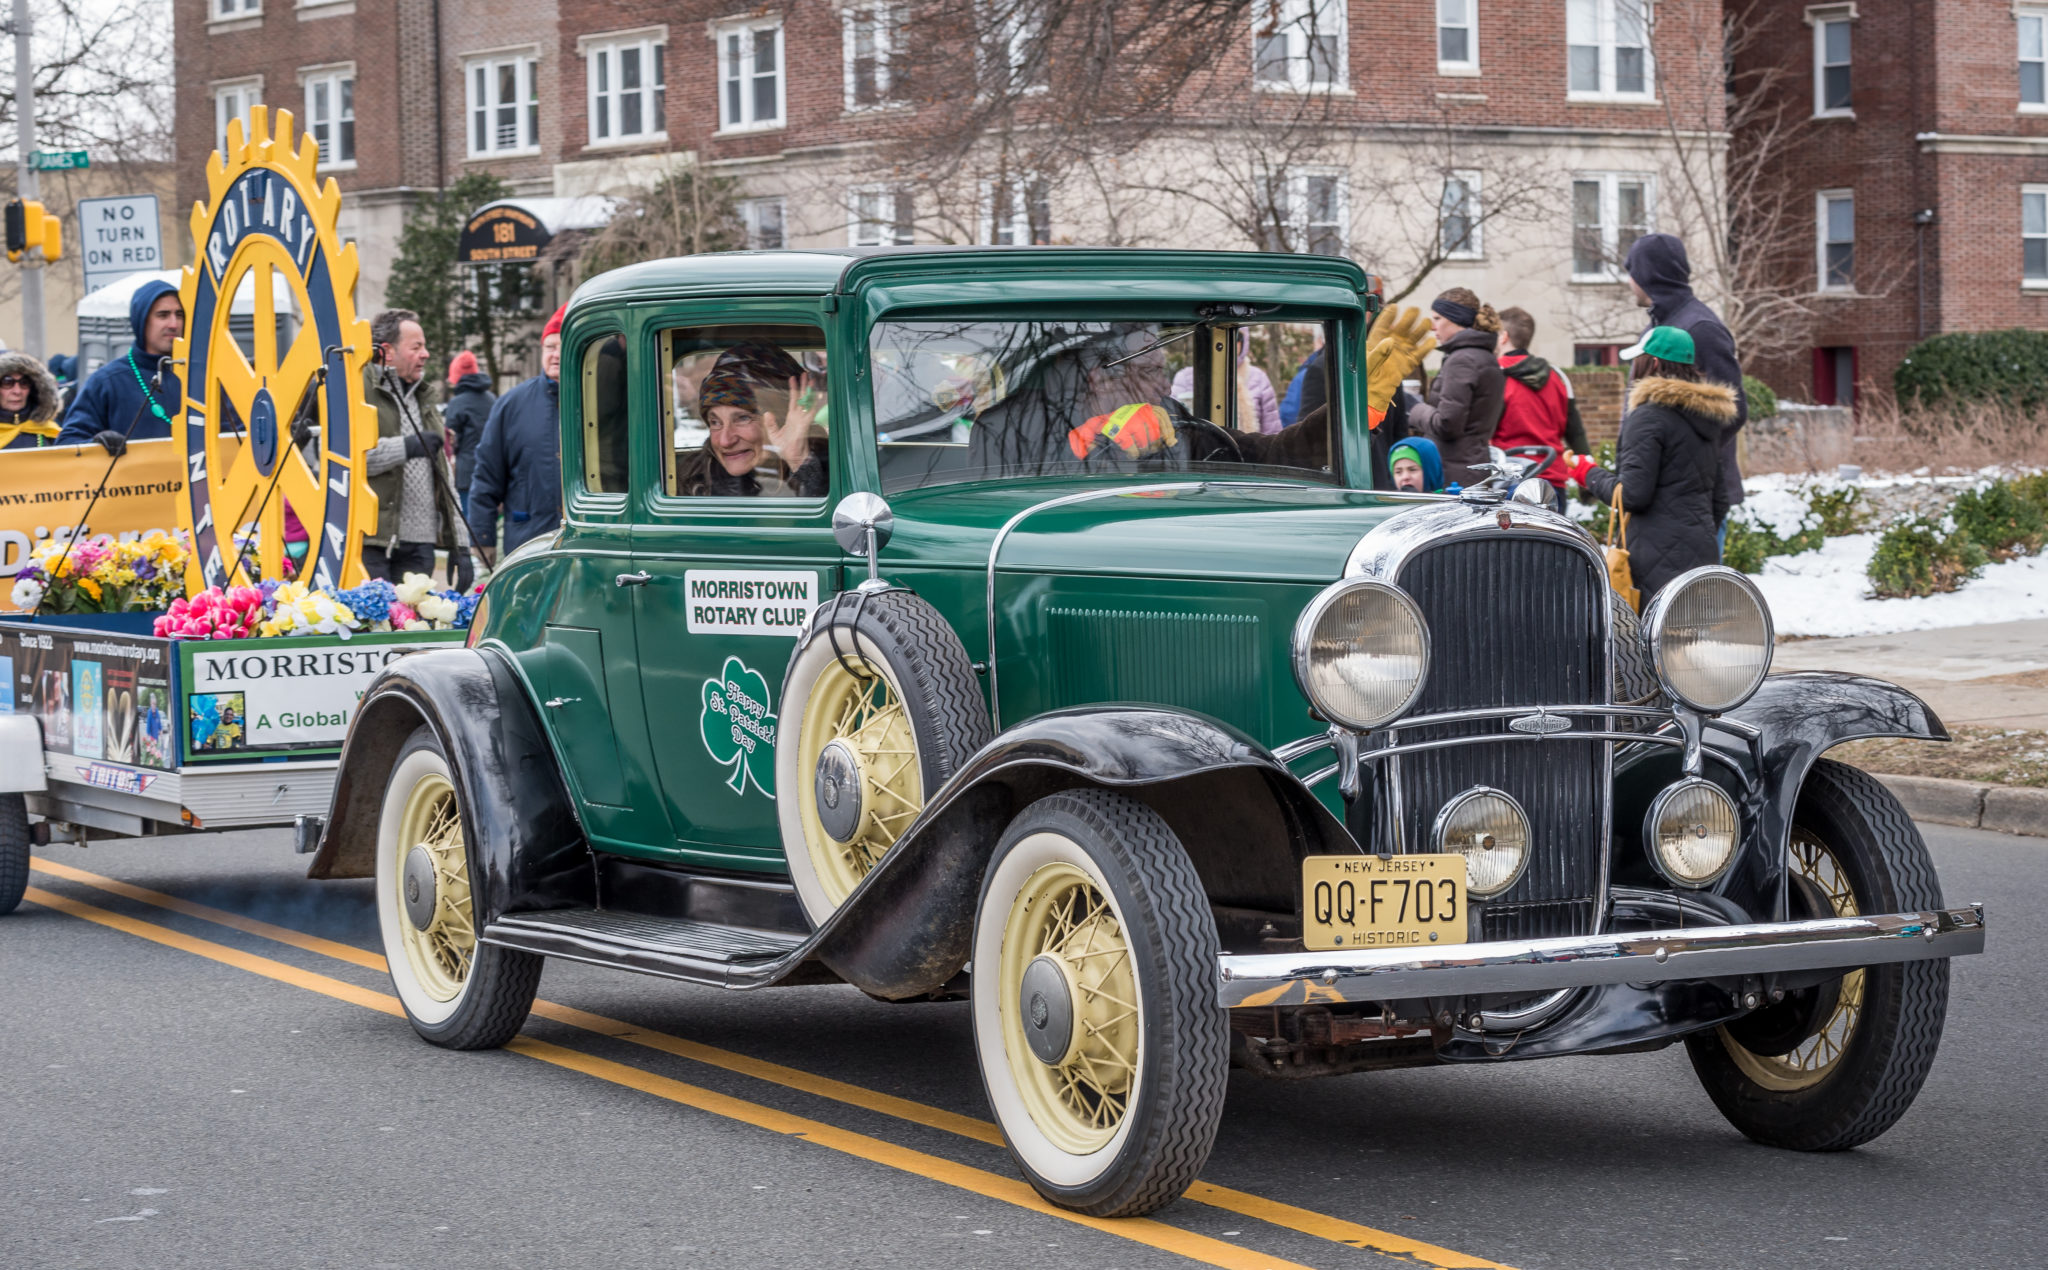 Saint Patrick's Day Parade in Morristown old fashioned green car